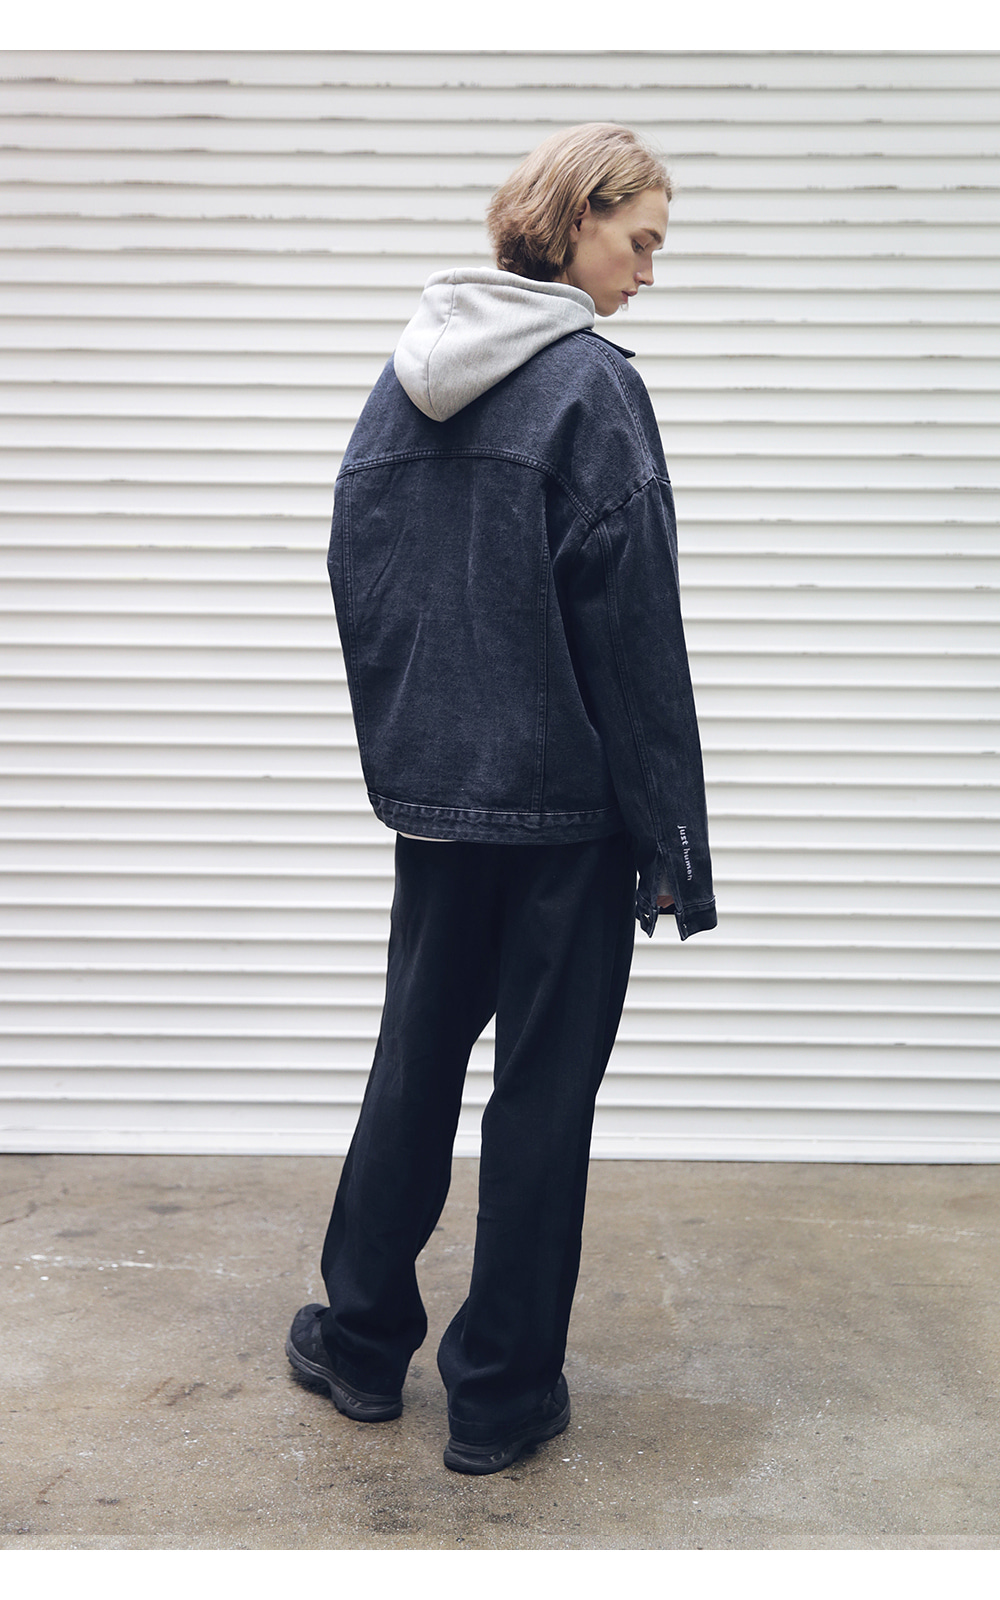 매스노운(MASSNOUN) SB OVERSIZED DENIM JACKET MFEJK004-BK